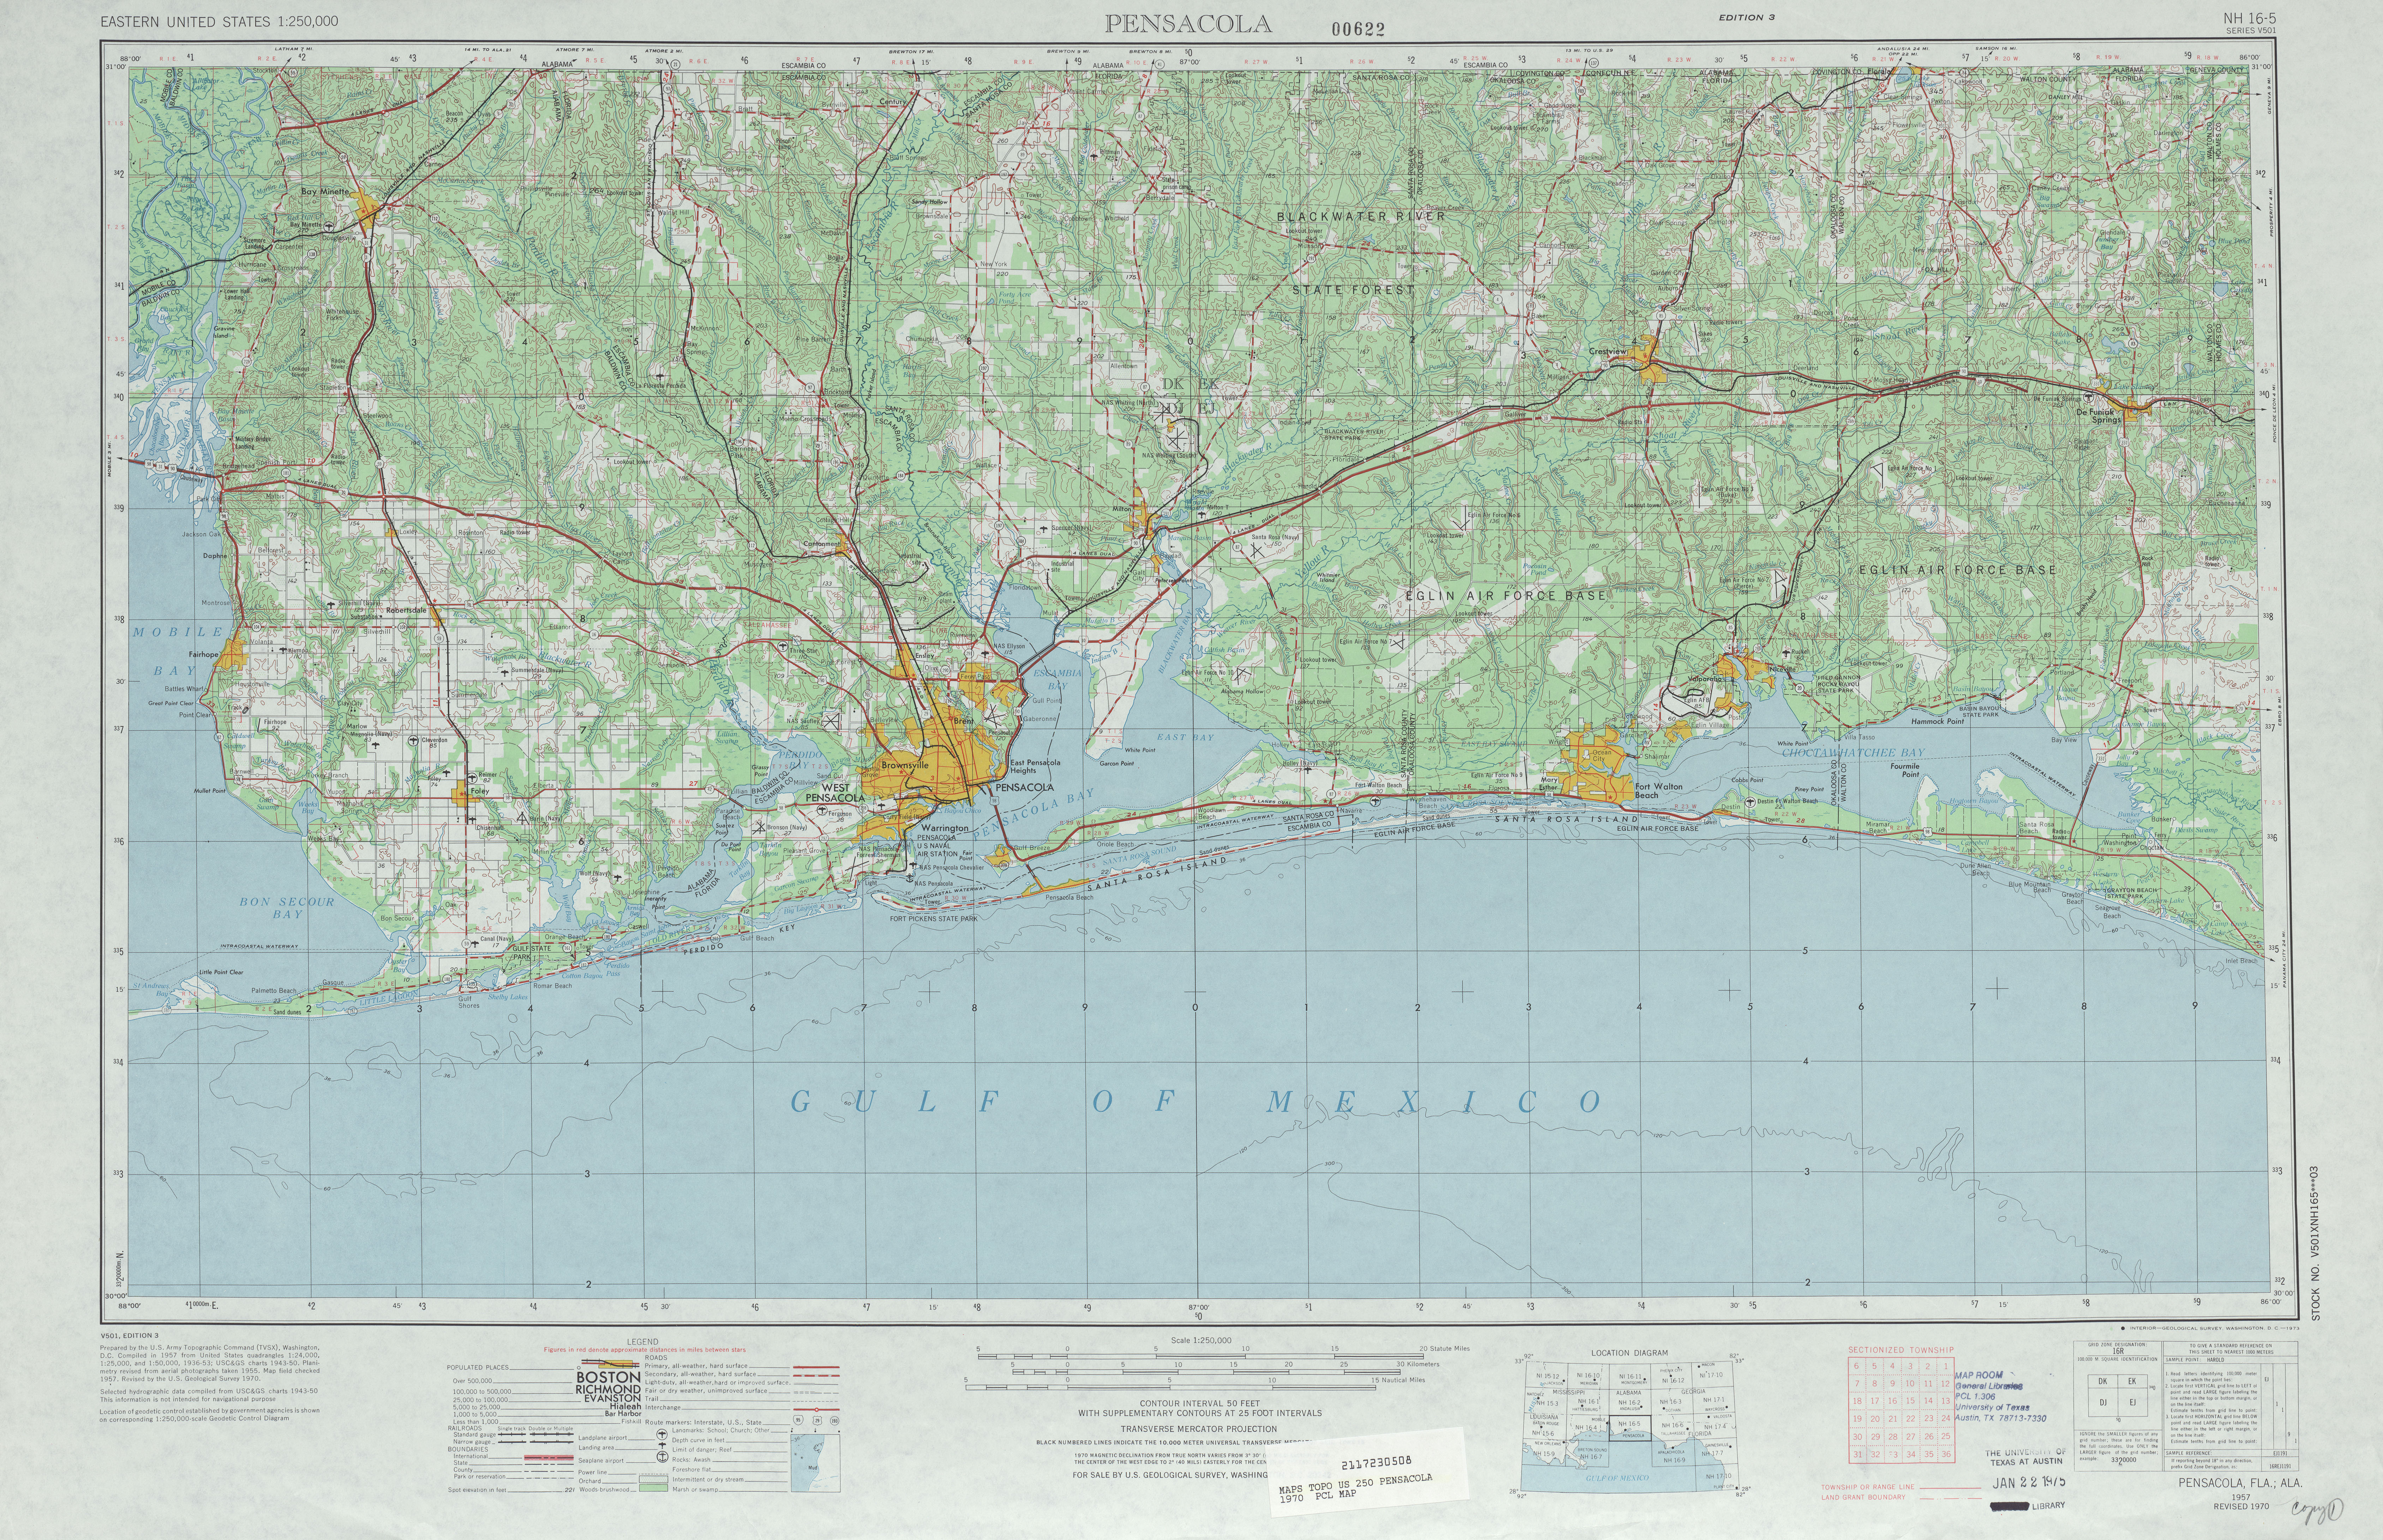 Pensacola Topographic Map Sheet, United States 1970